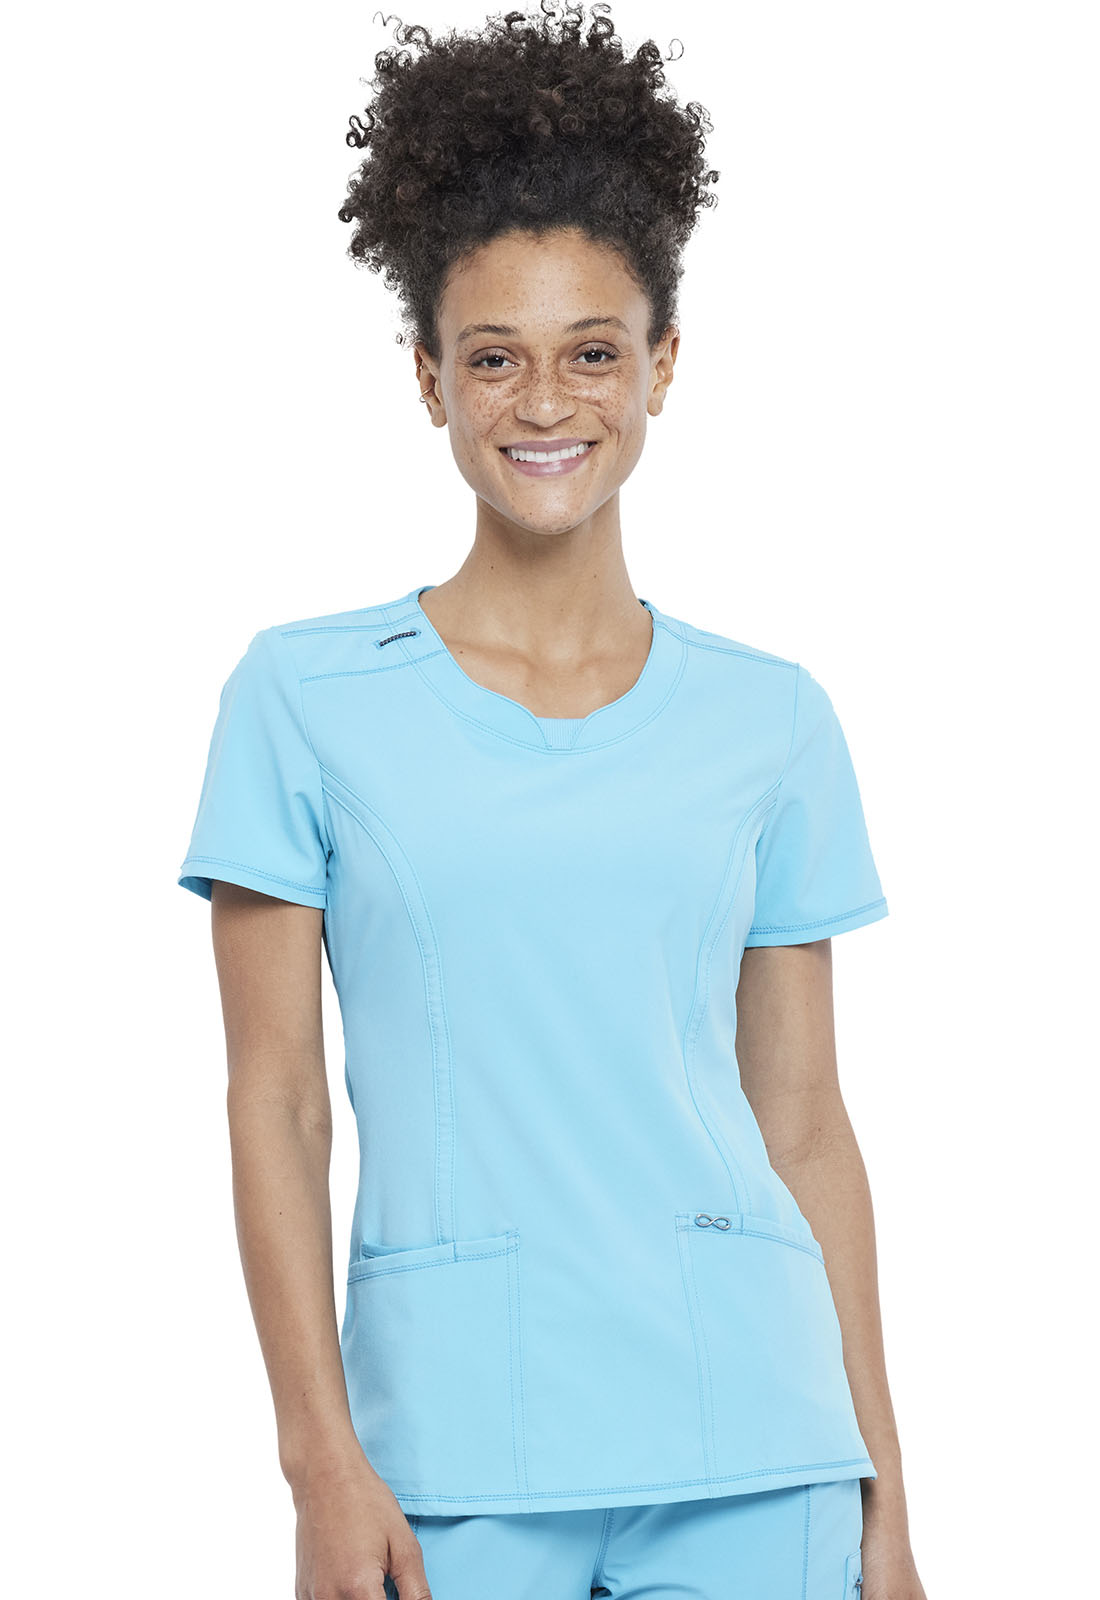 d2dfbb17da5 Infinity Round Neck Top in Turquoise 2624A-TRQ from Castle Uniforms